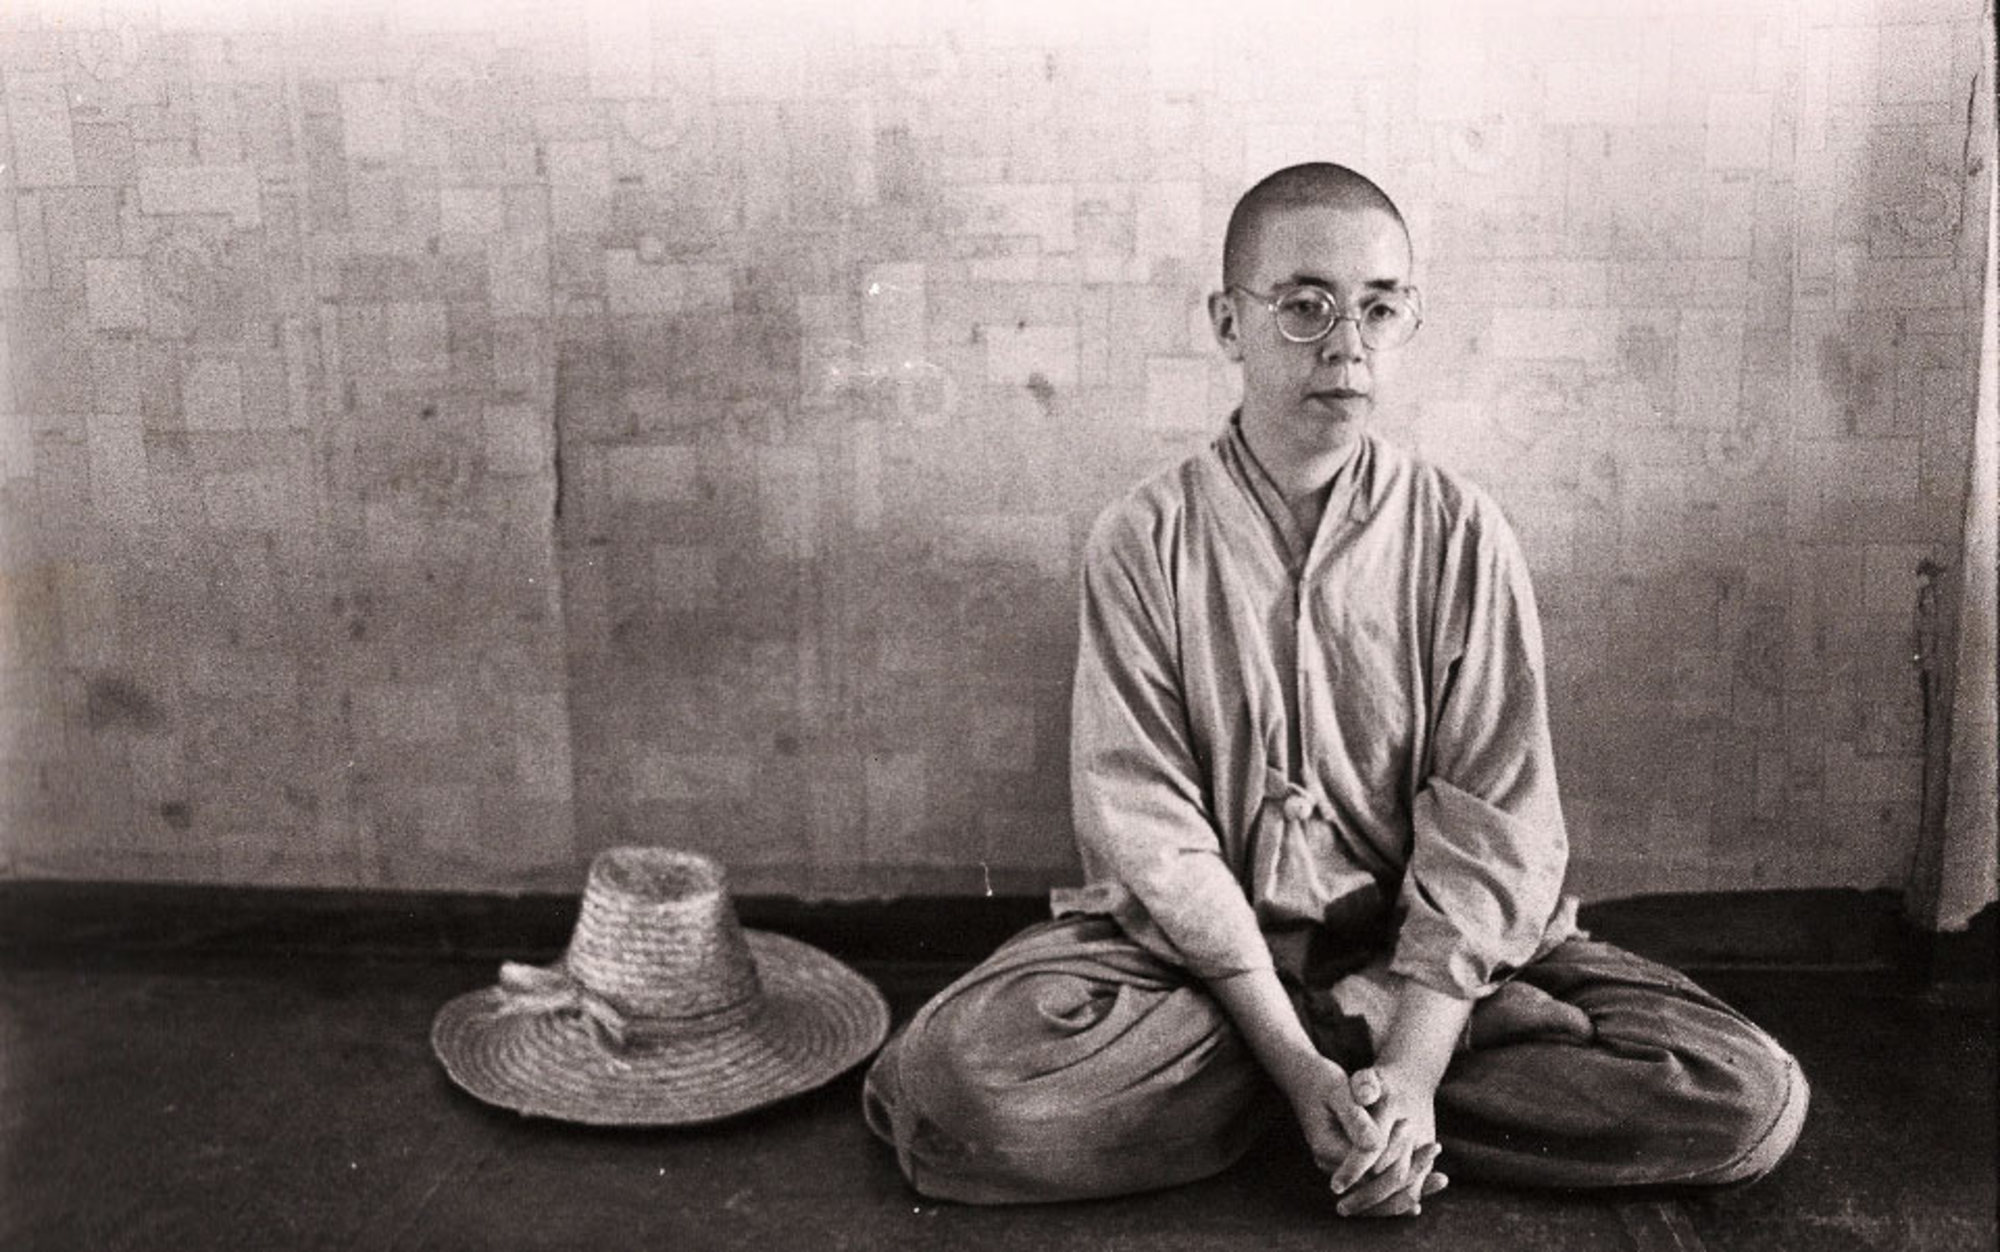 buddhist meditation essays Meditation in buddhism buddhists pursue meditation as a means to attain their goal of escaping suffering and the cycles of rebirth: the achievement of nirvana (pali.